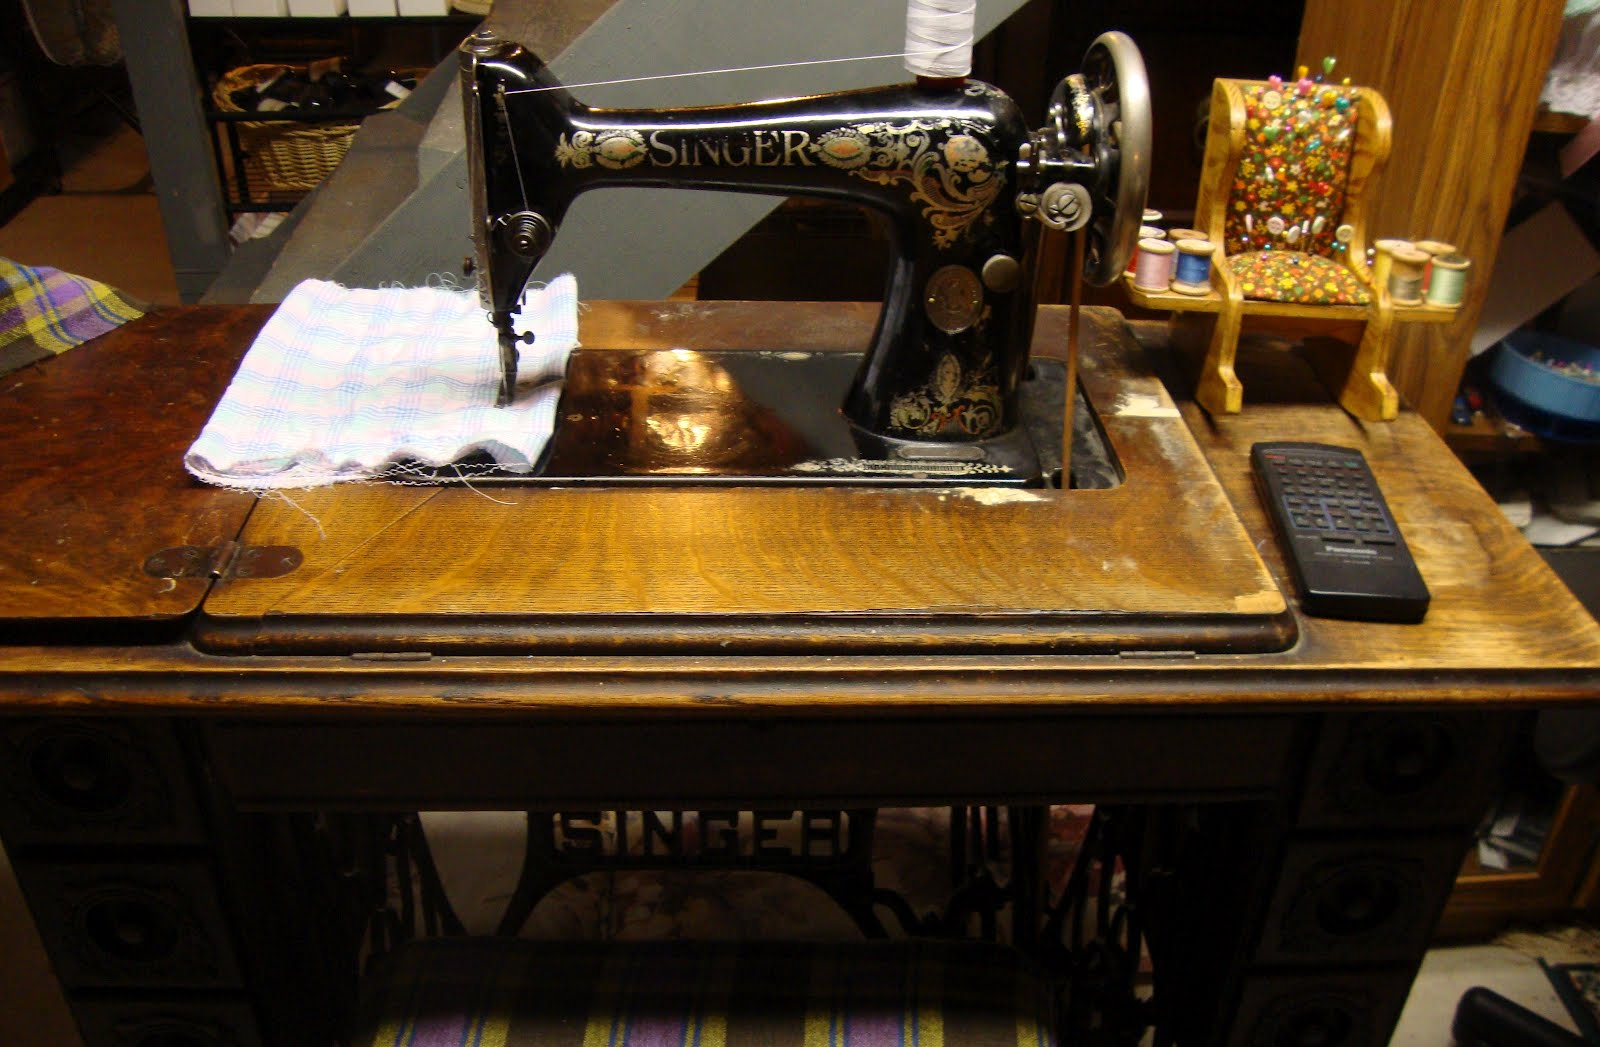 Modern day laura singer 66 review singer 66 1 treadle fandeluxe Image collections